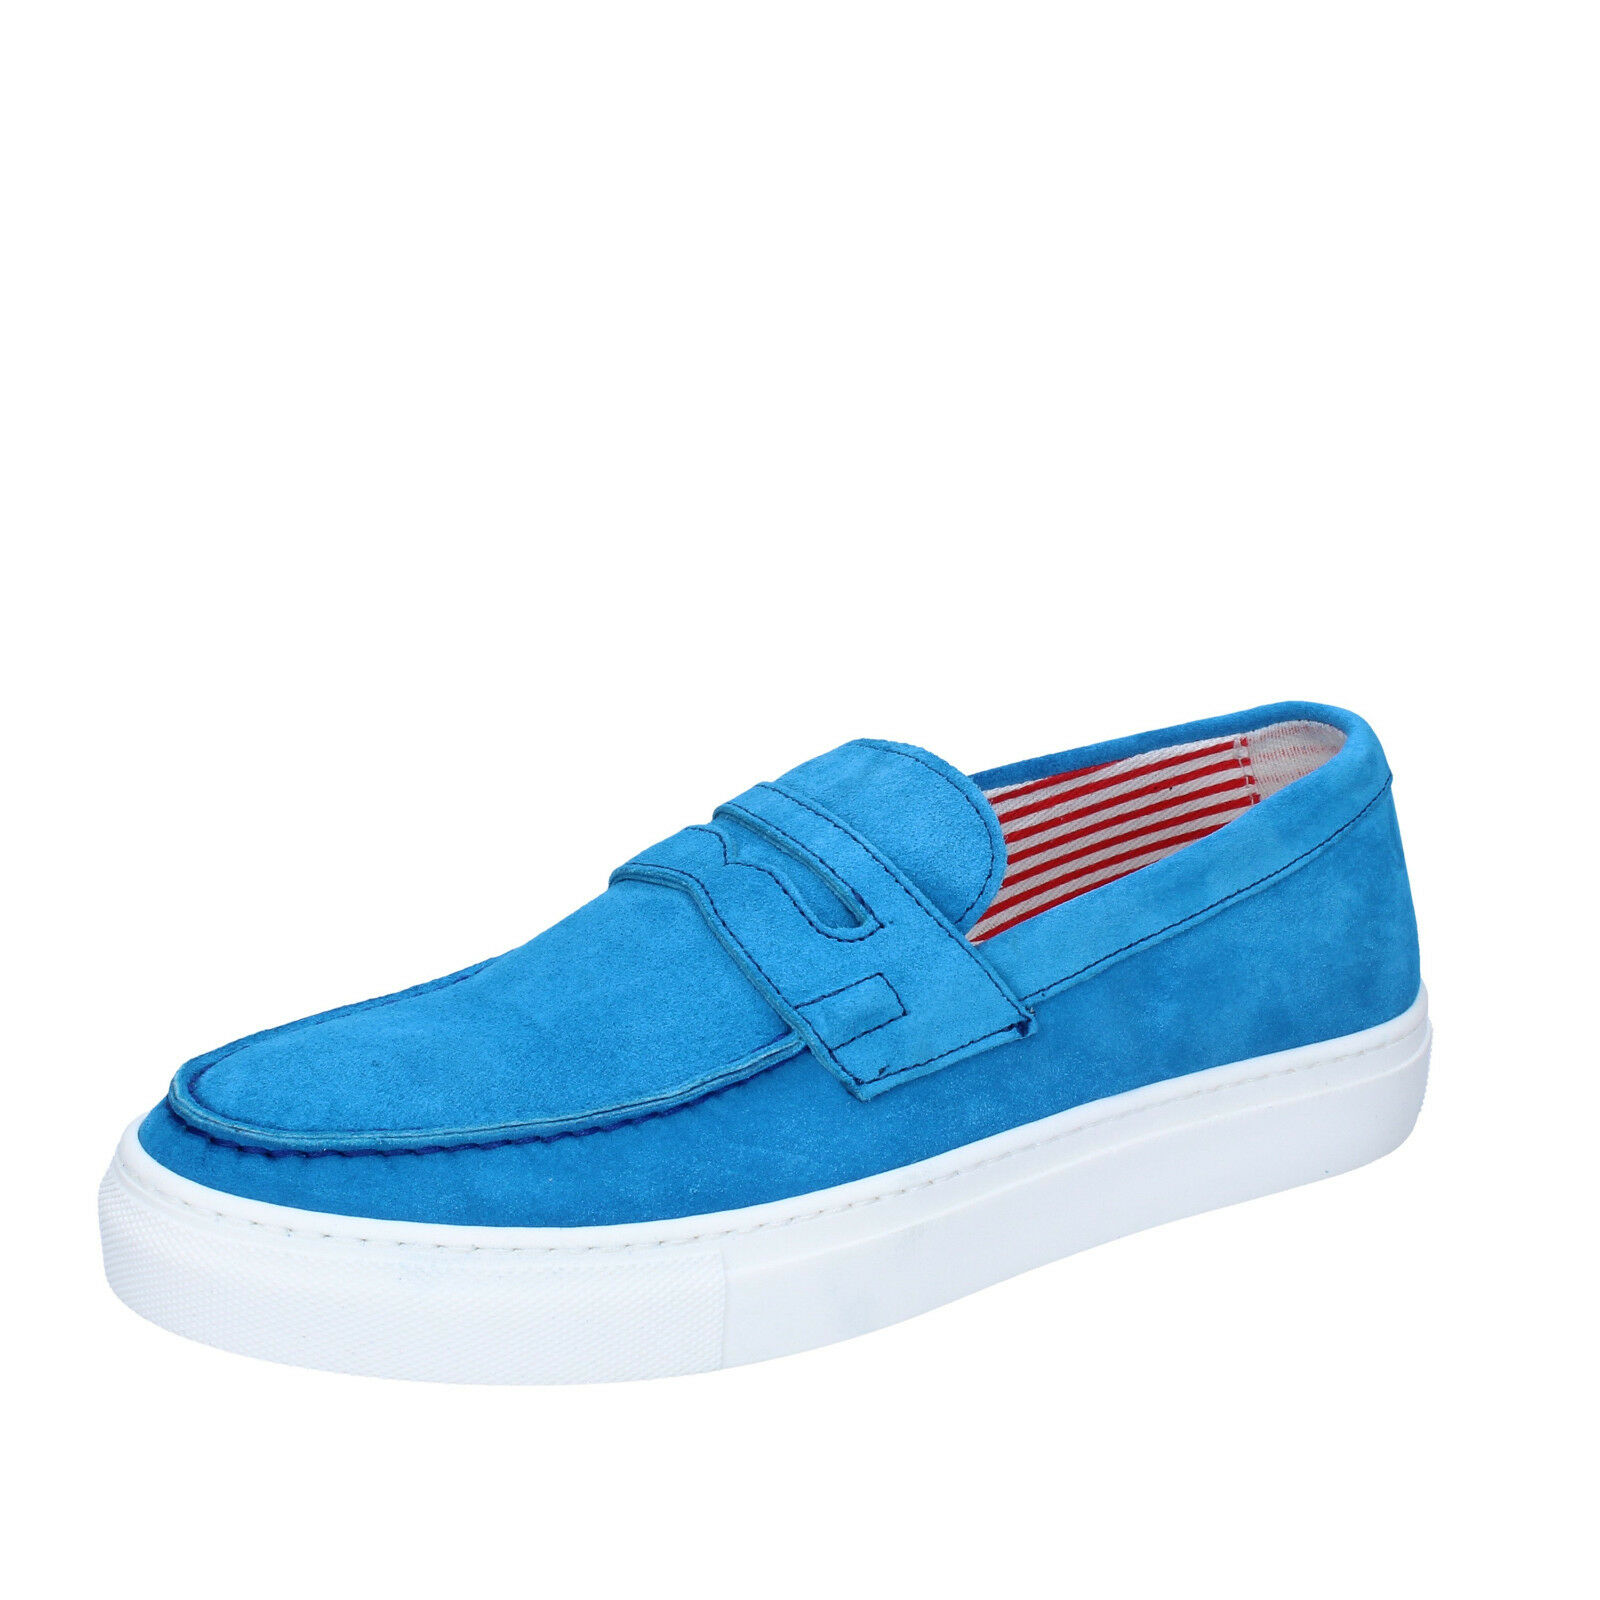 Mens shoes DI MELLA 6 (EU 40) loafers light bluee suede AB997-B